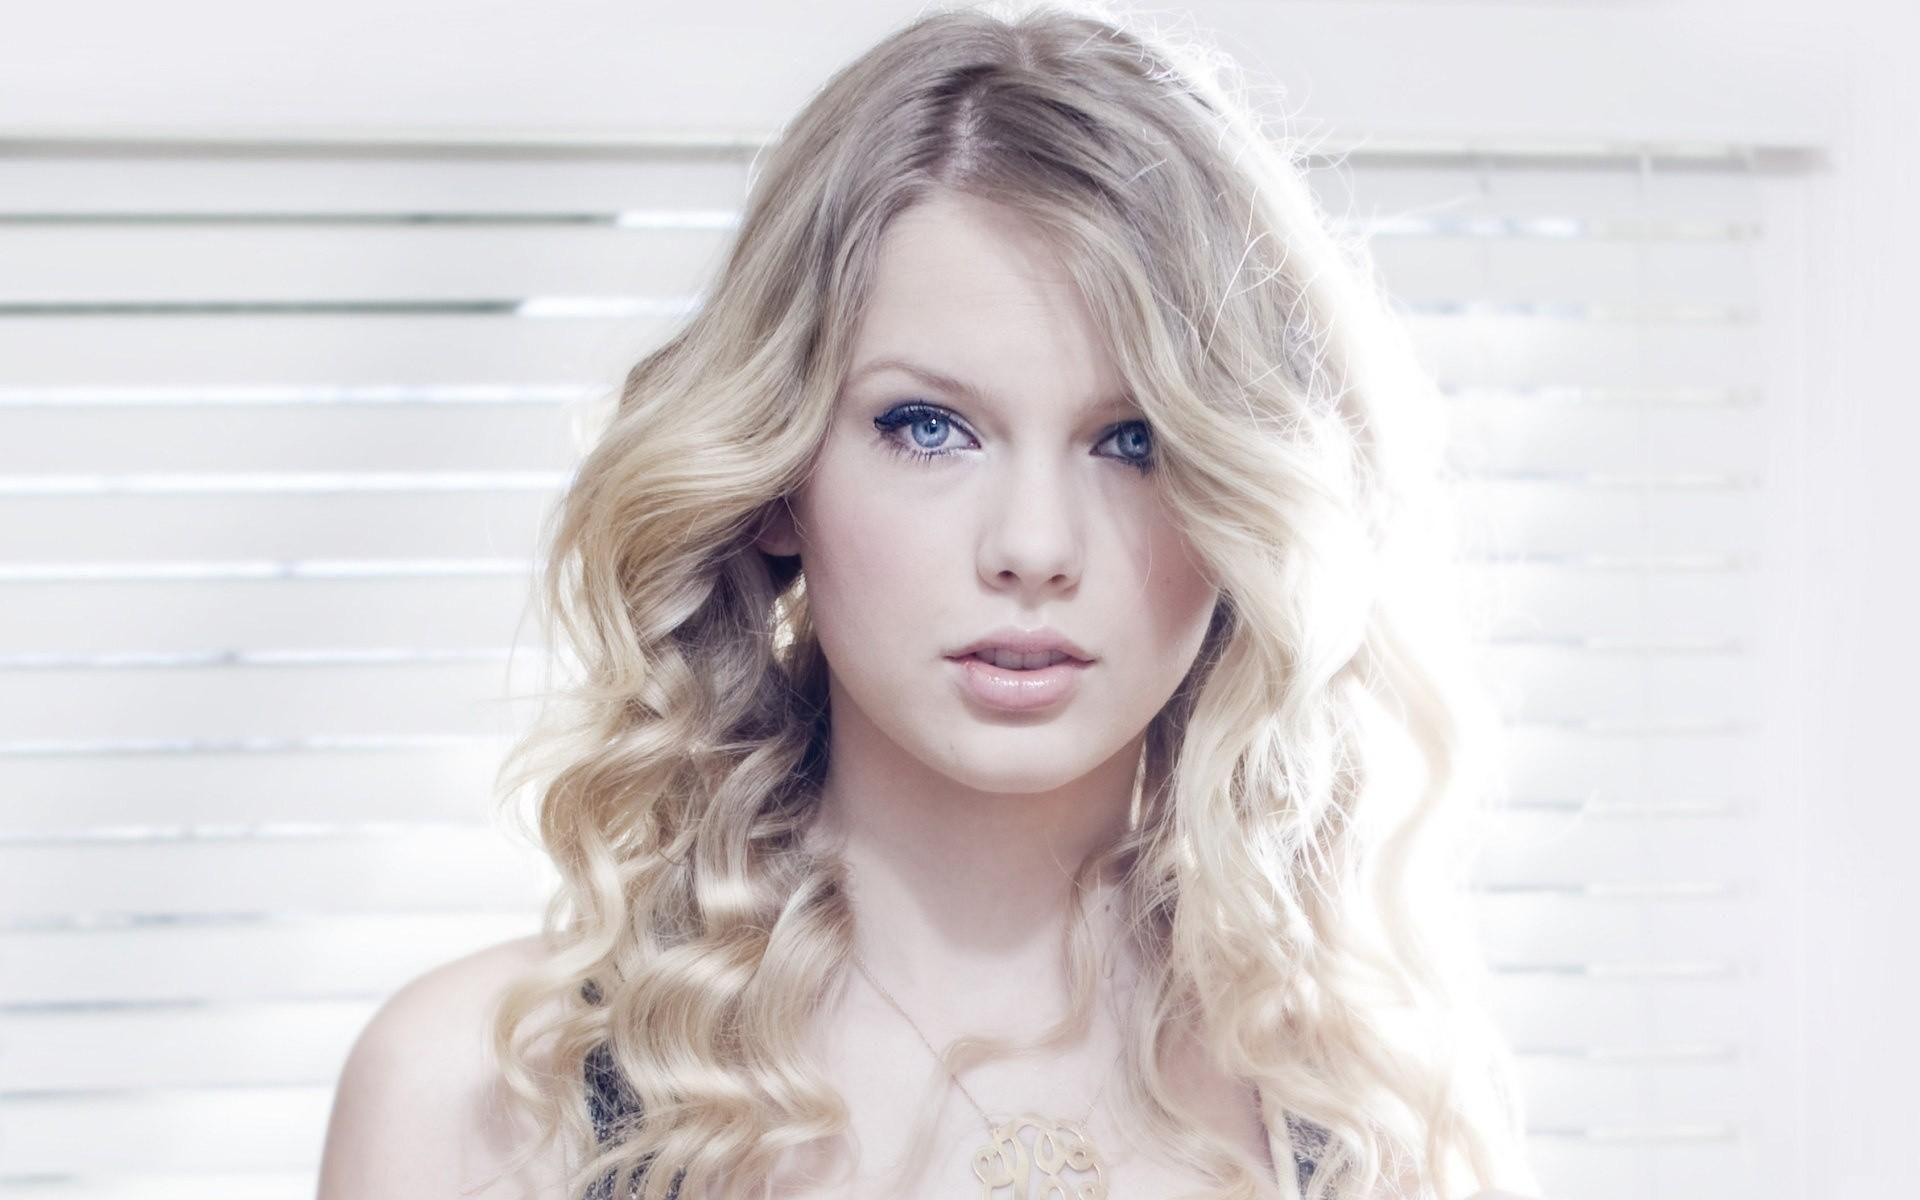 Taylor Swift 2017 Wallpapers 1920x1200